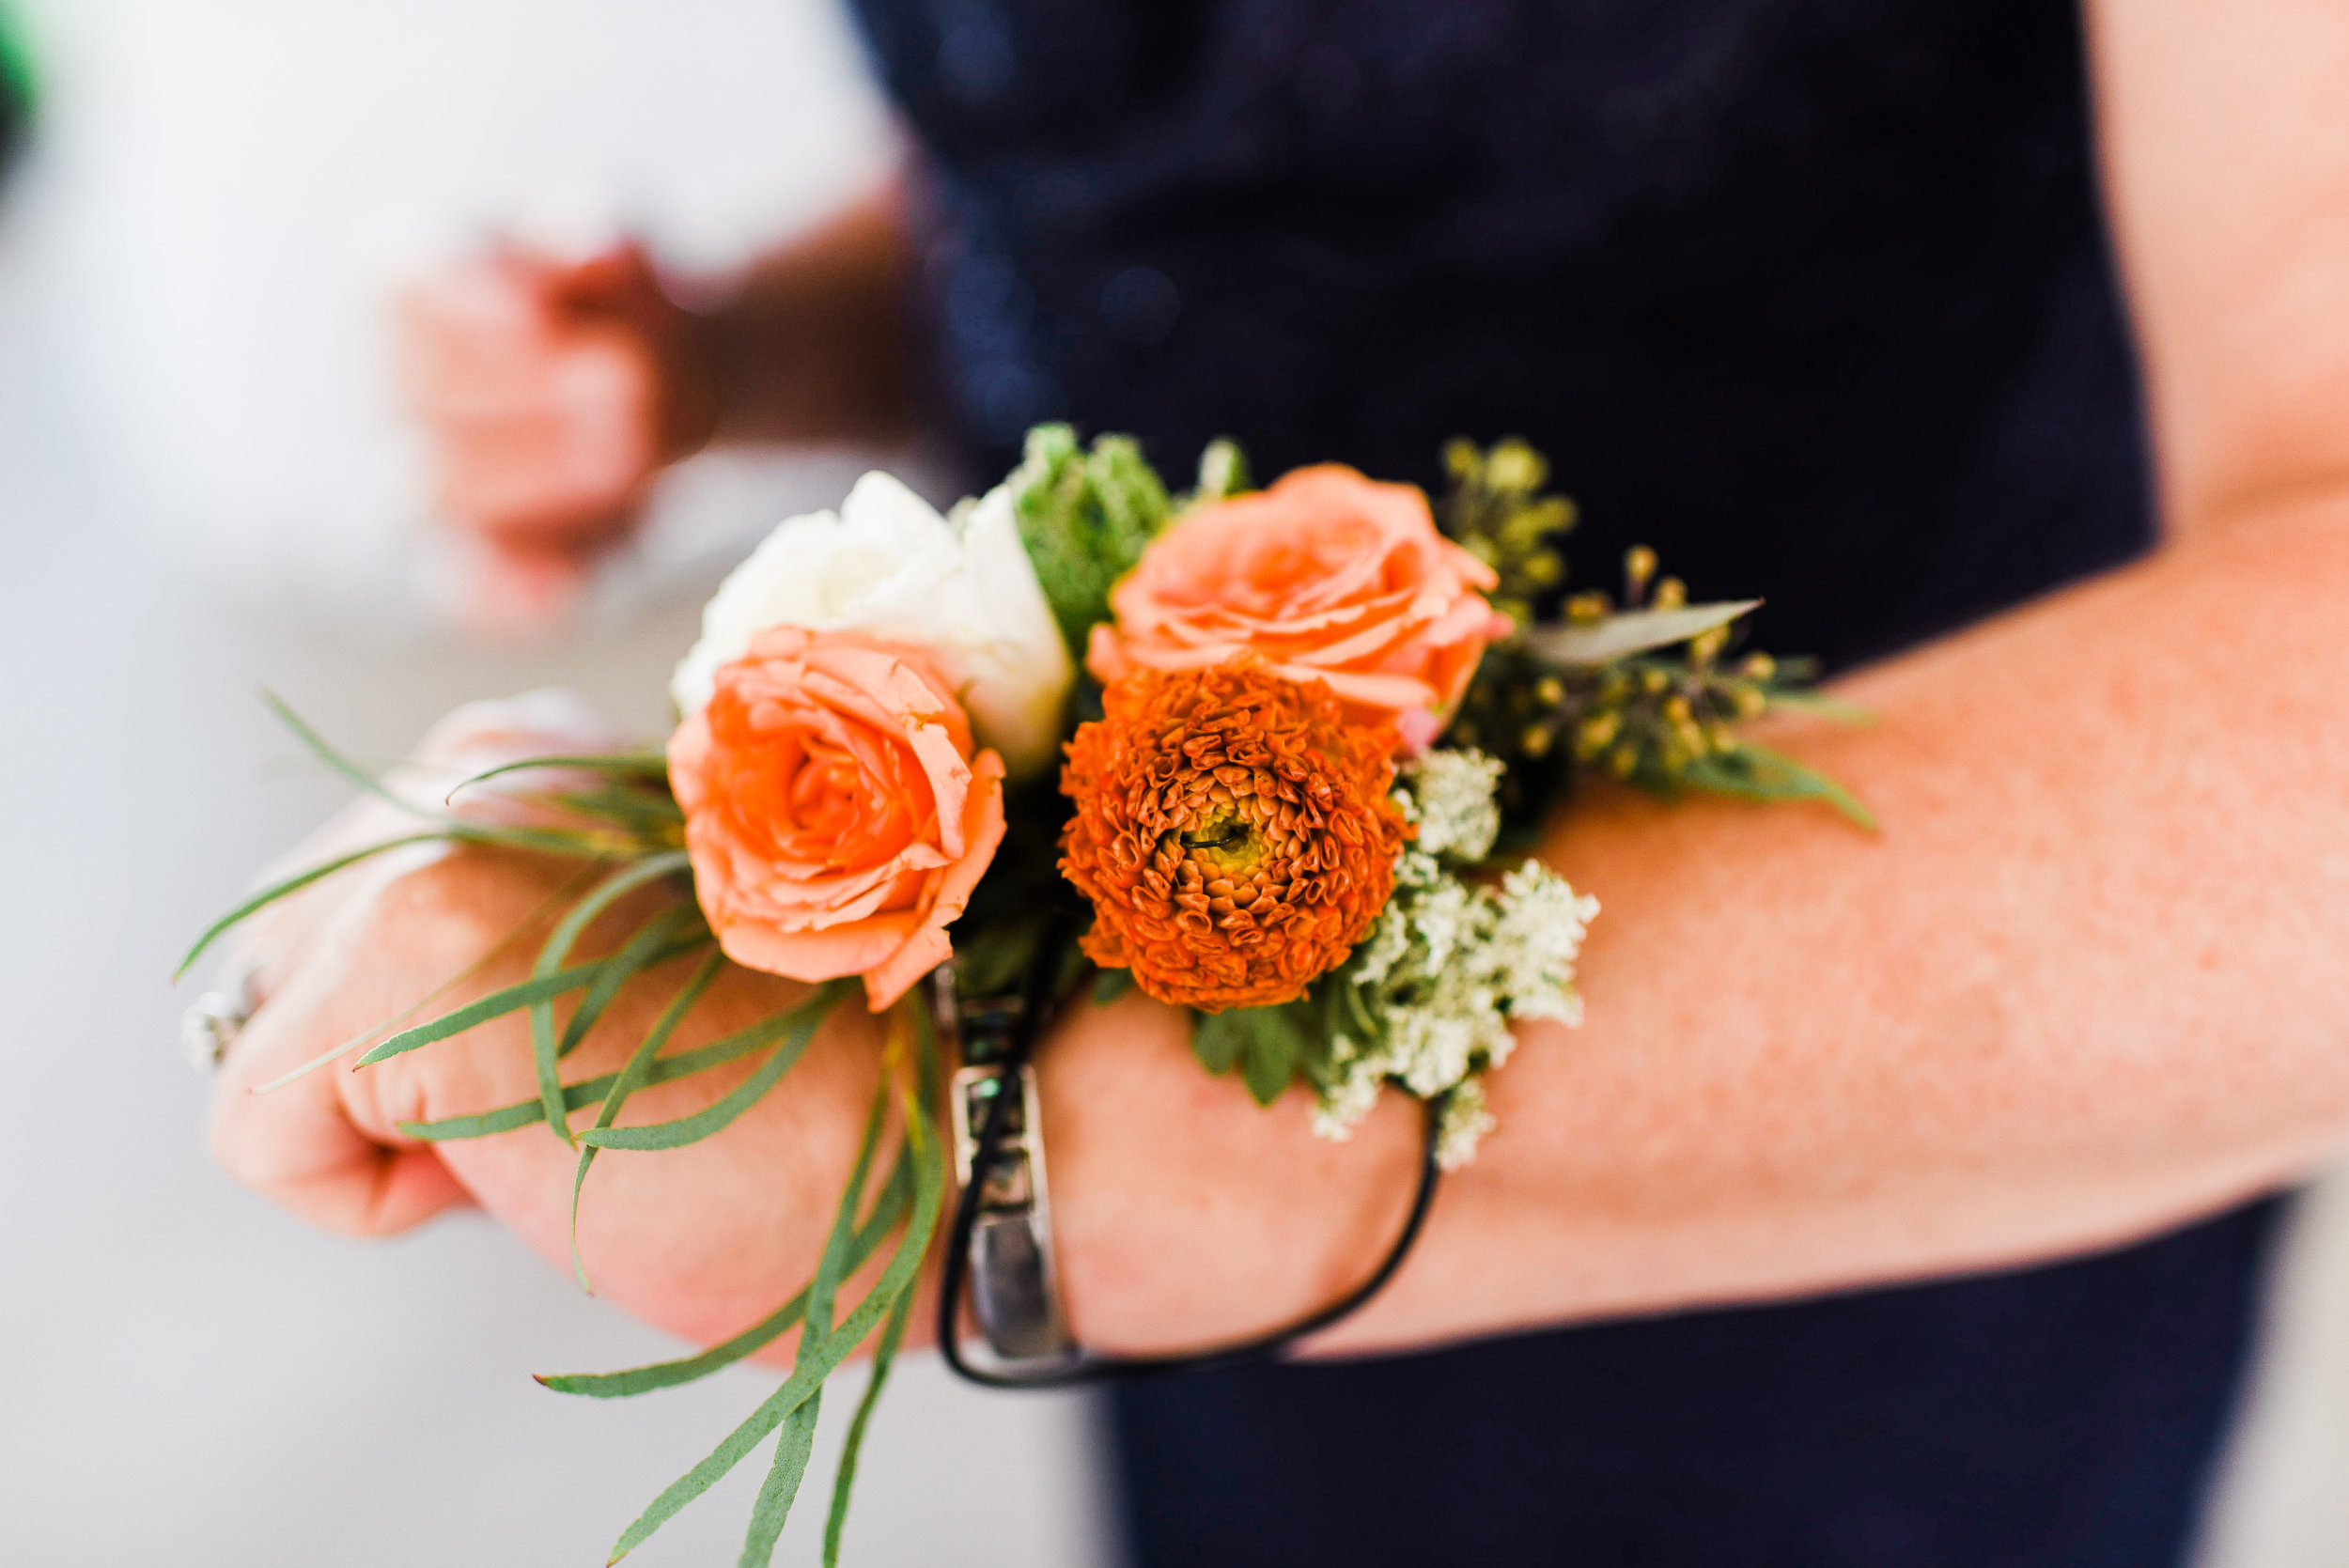 Wrist Corsages are the perfect pop of color for moms or any honorary women to wear.